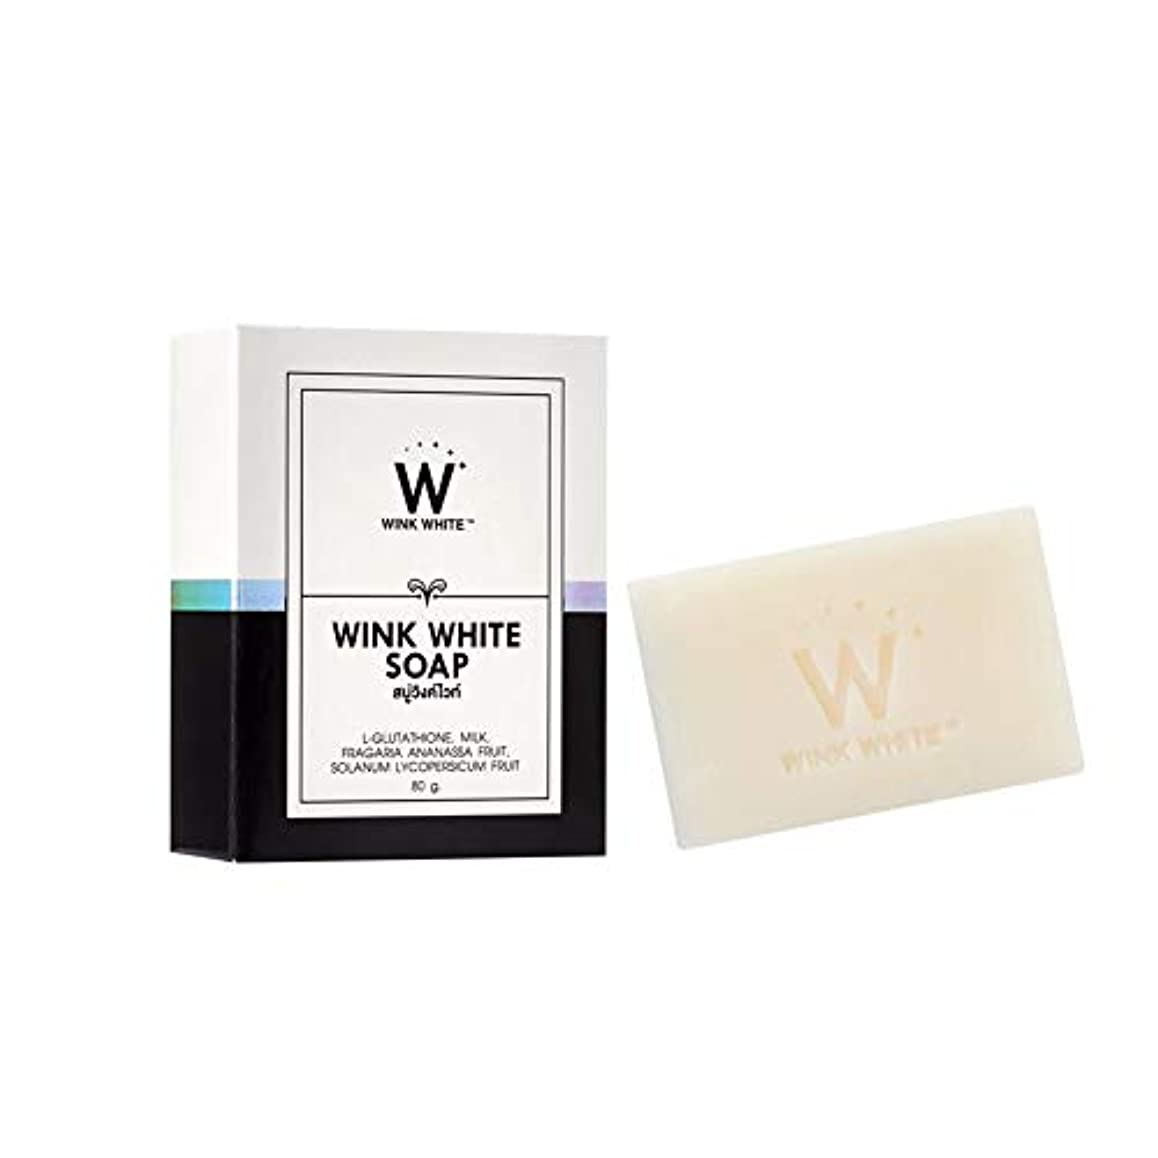 ネット想定アグネスグレイSoap Net Nature White Soap Base Wink White Soap Gluta Pure Skin Body Whitening Strawberry for Whitening Skin All...